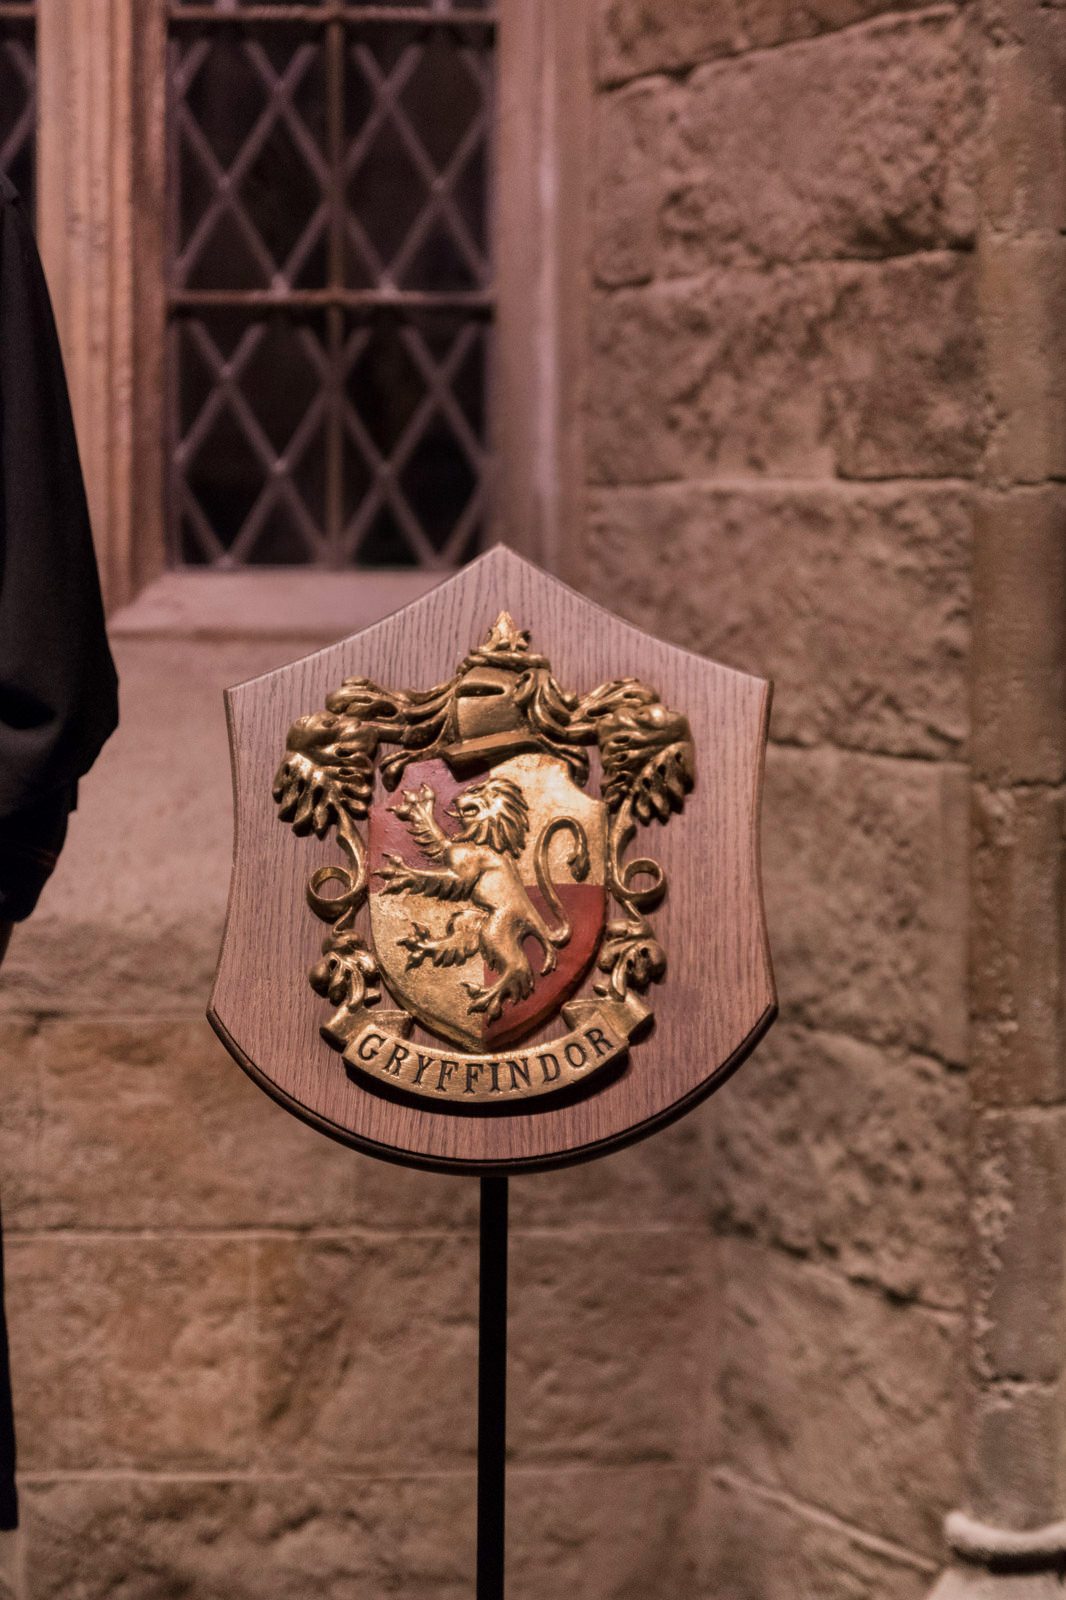 Blog-Mode-And-The-City-Lifestyle-Visite-Studios-Harry-Potter-Londres-3